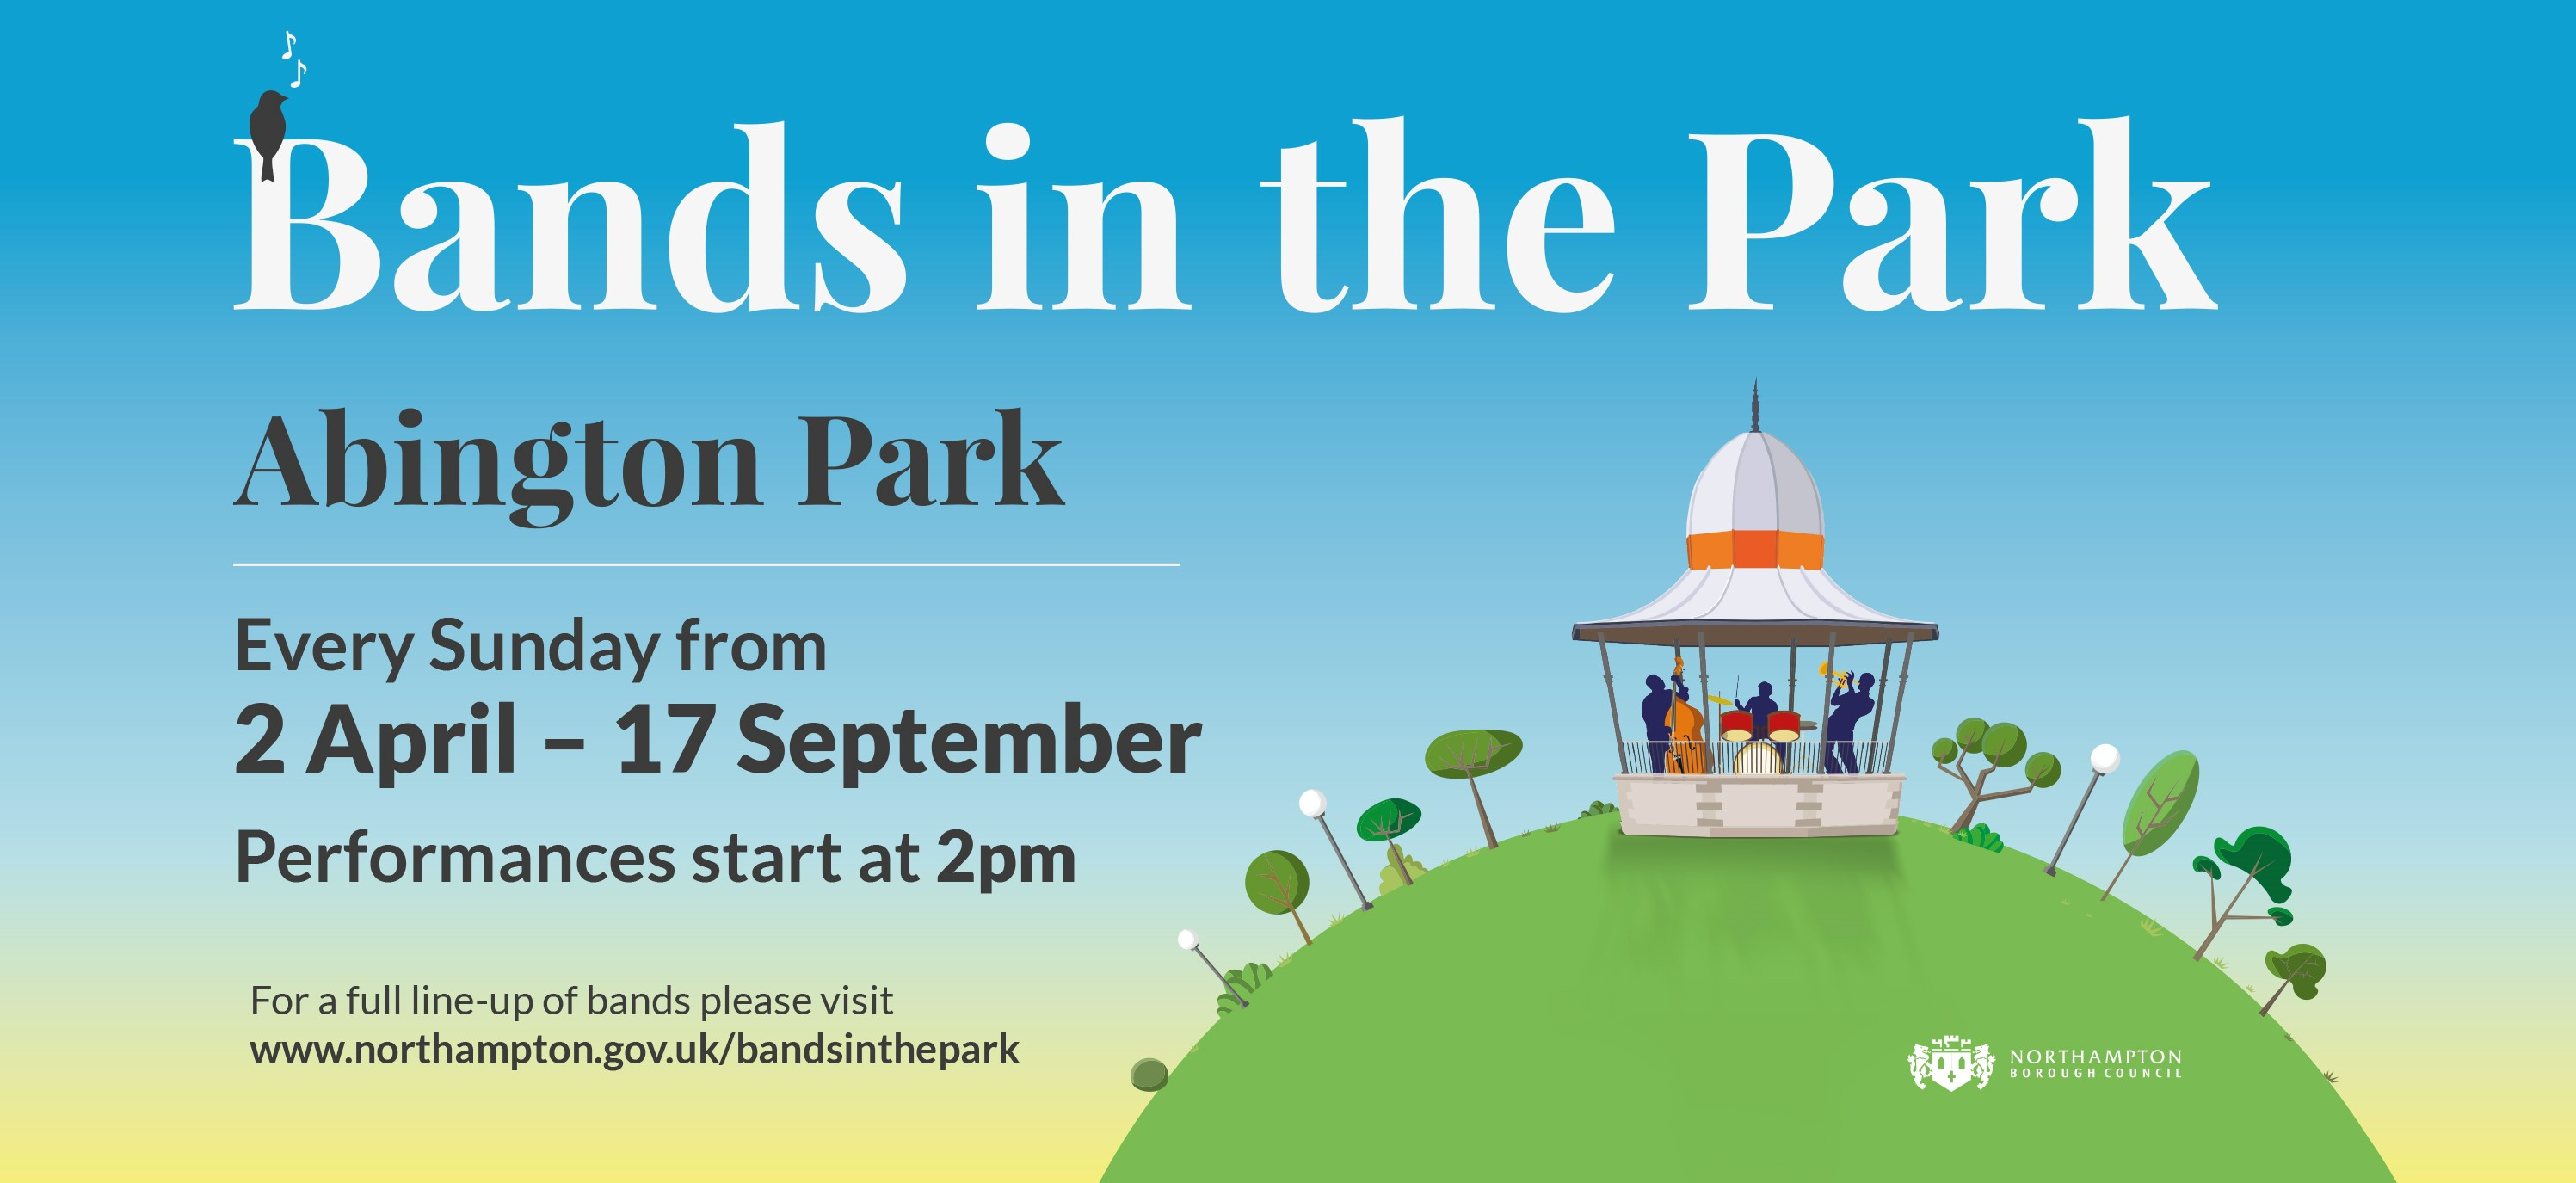 Bands in the Park 2017